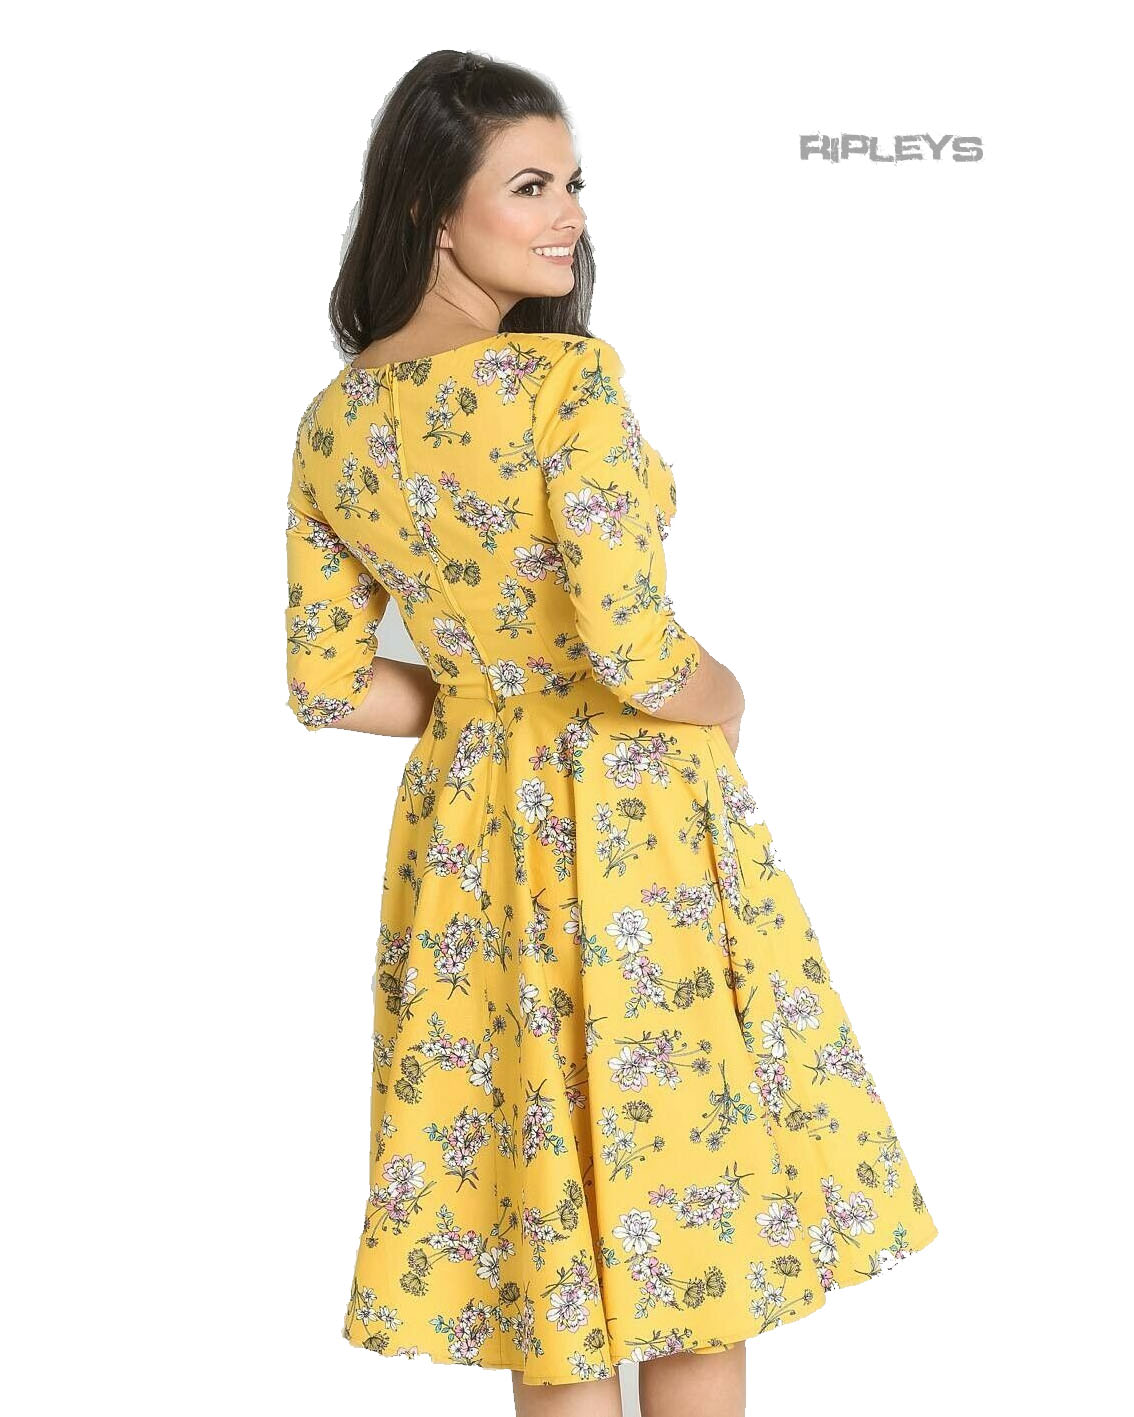 Hell-Bunny-40s-50s-Pin-Up-Vintage-Dress-MURIEL-Flowers-Yellow-All-Sizes thumbnail 12